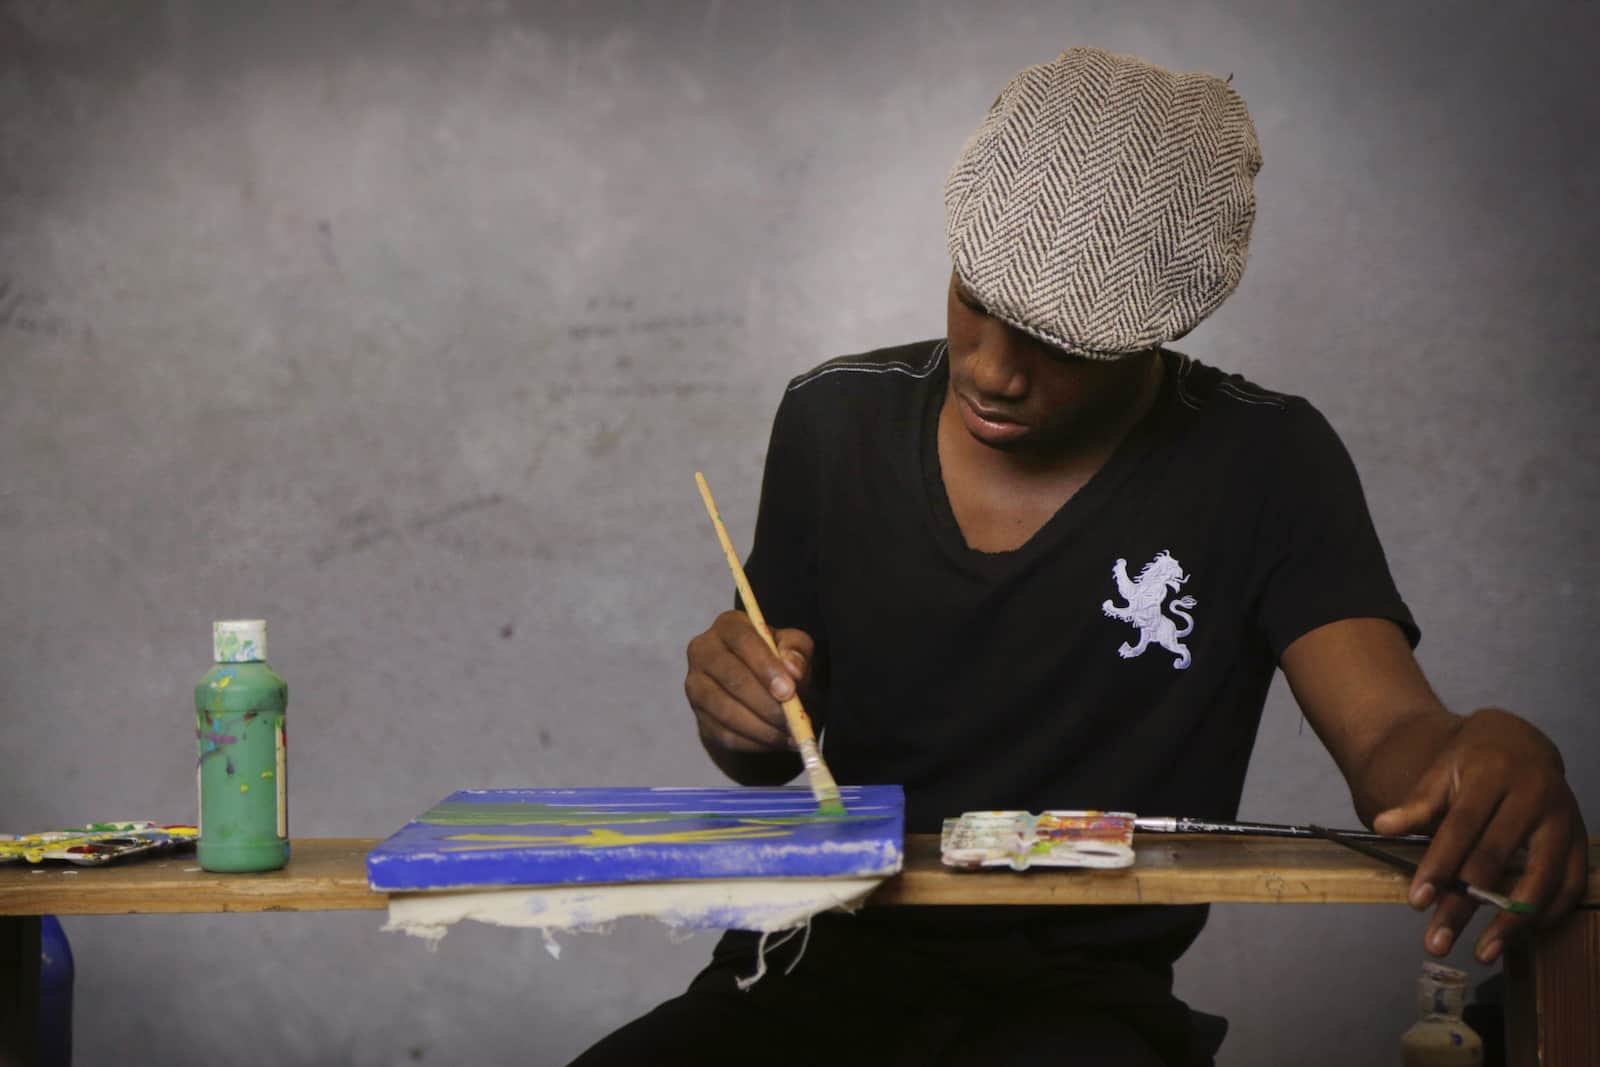 A man in a grey beret sits at a table, painting.